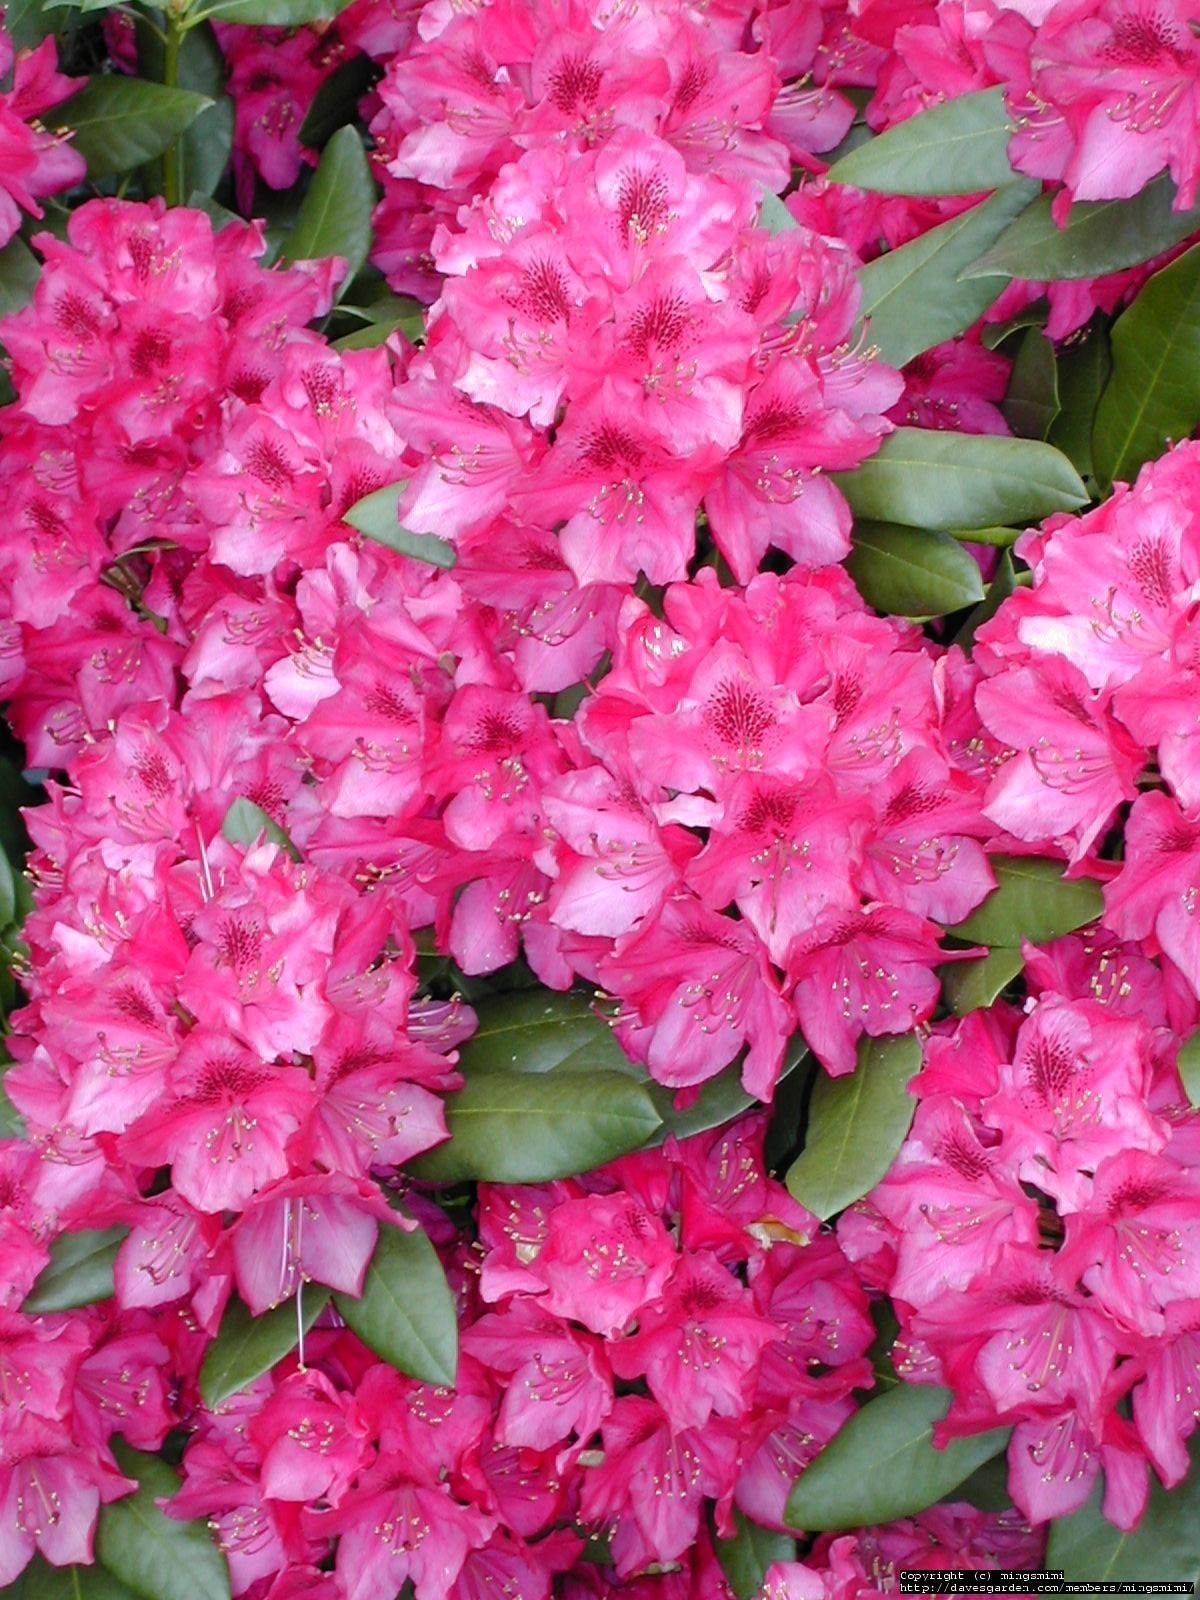 Coast rhododendron state flower for washington living in coast rhododendron or pacific rhododendron native to the pacific northwest along the cascade mountain region is the state flower of washington state publicscrutiny Images